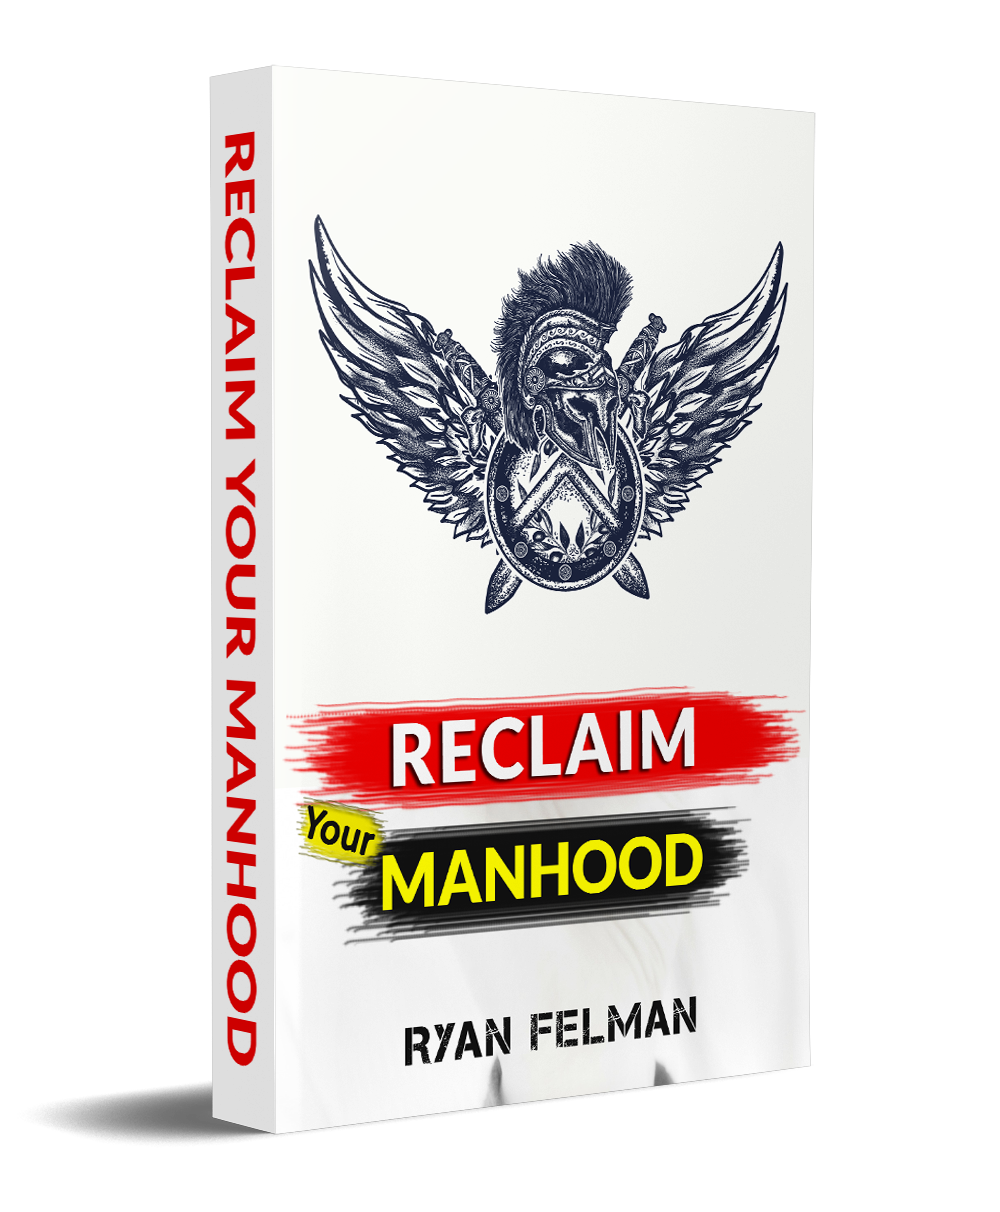 If you're read to take control of your life. If you're ready to say no to an average, degenerate life. If you're ready to turn your life around, follow the guide that helped me become a man of action. - Lose weight, write a book, become confident. This is your guide to becoming a better man.